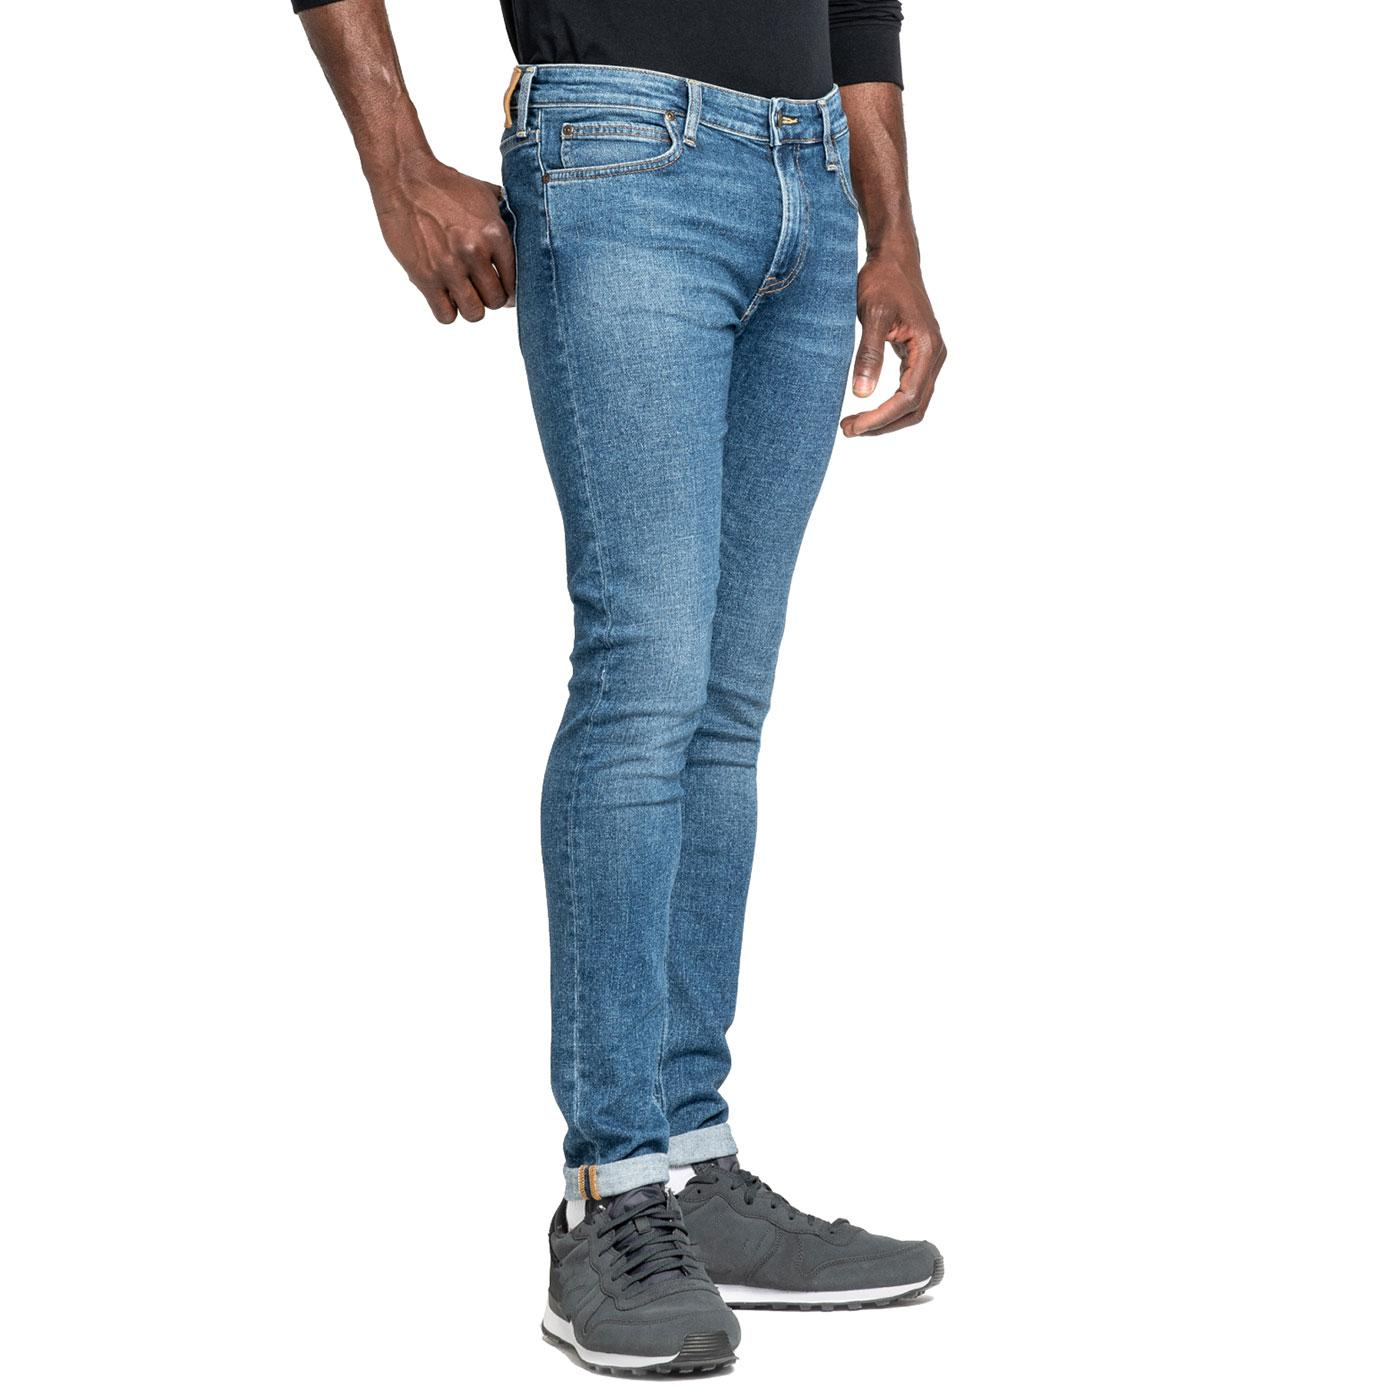 Malone LEE JEANS Stonewash Skinny Jeans EASY BLUE